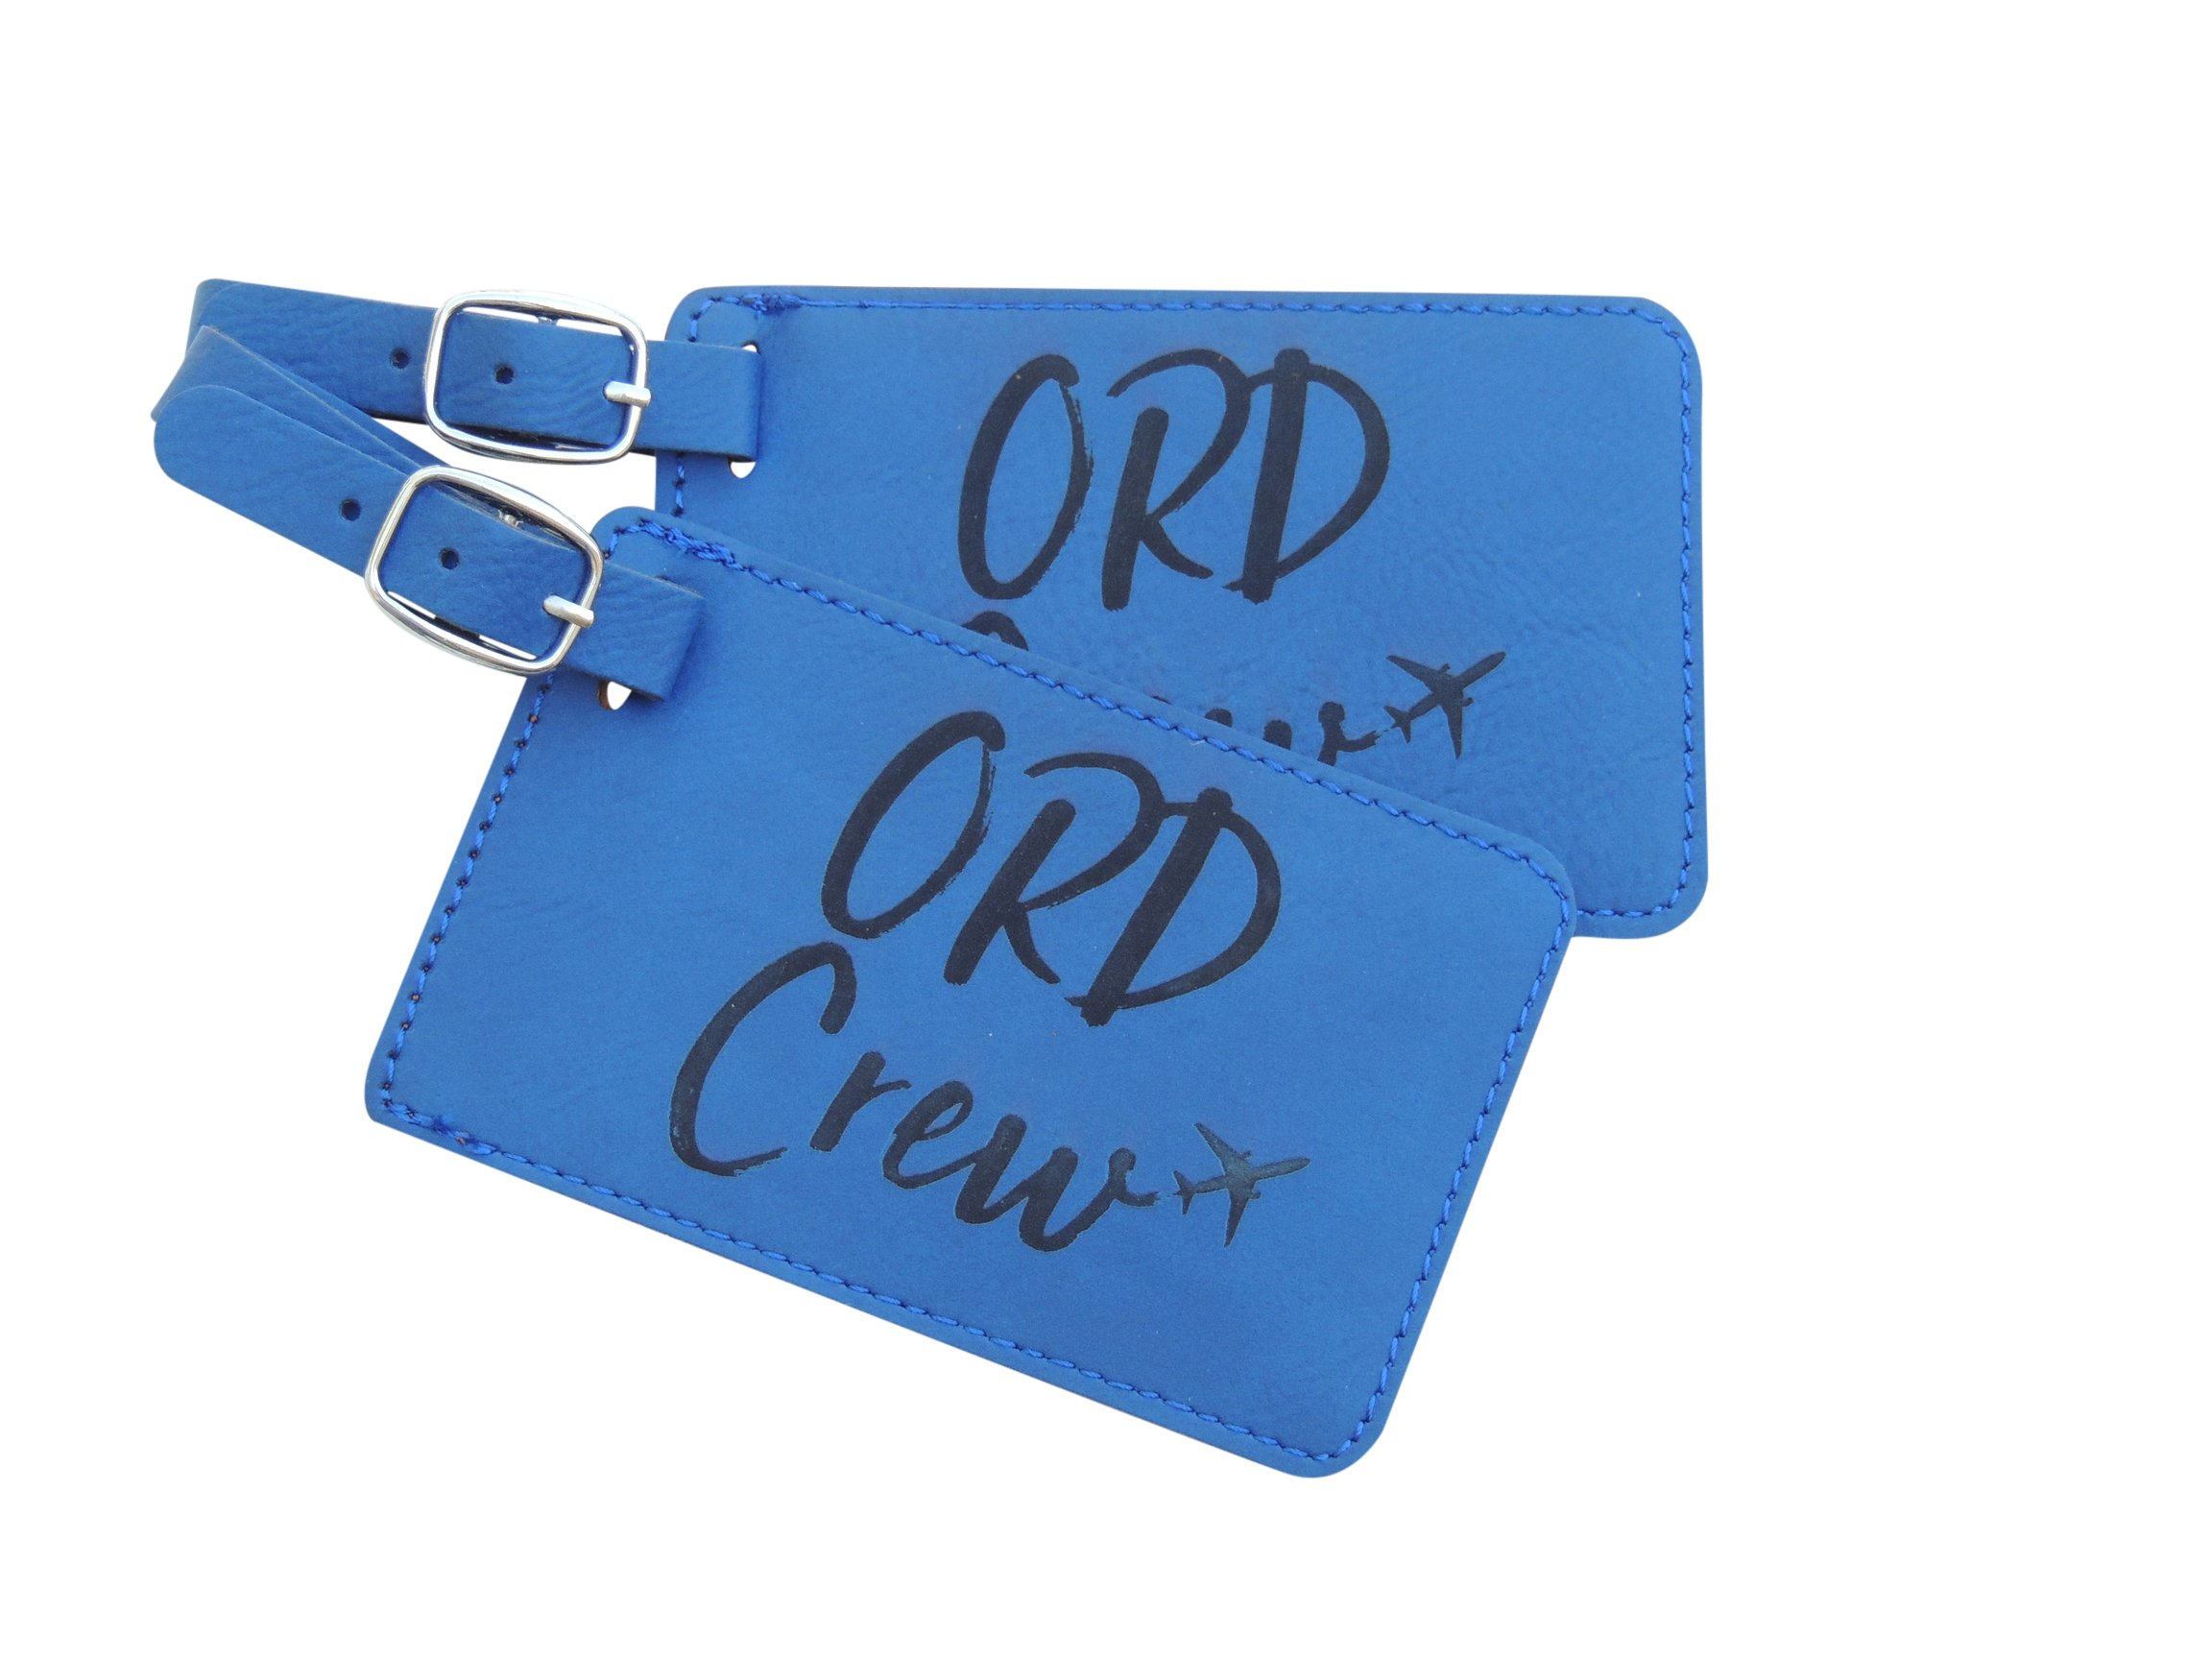 Chicago Crew Base Bag Tags for Flight Attendants, United Airlines, Set of Two (Blue)